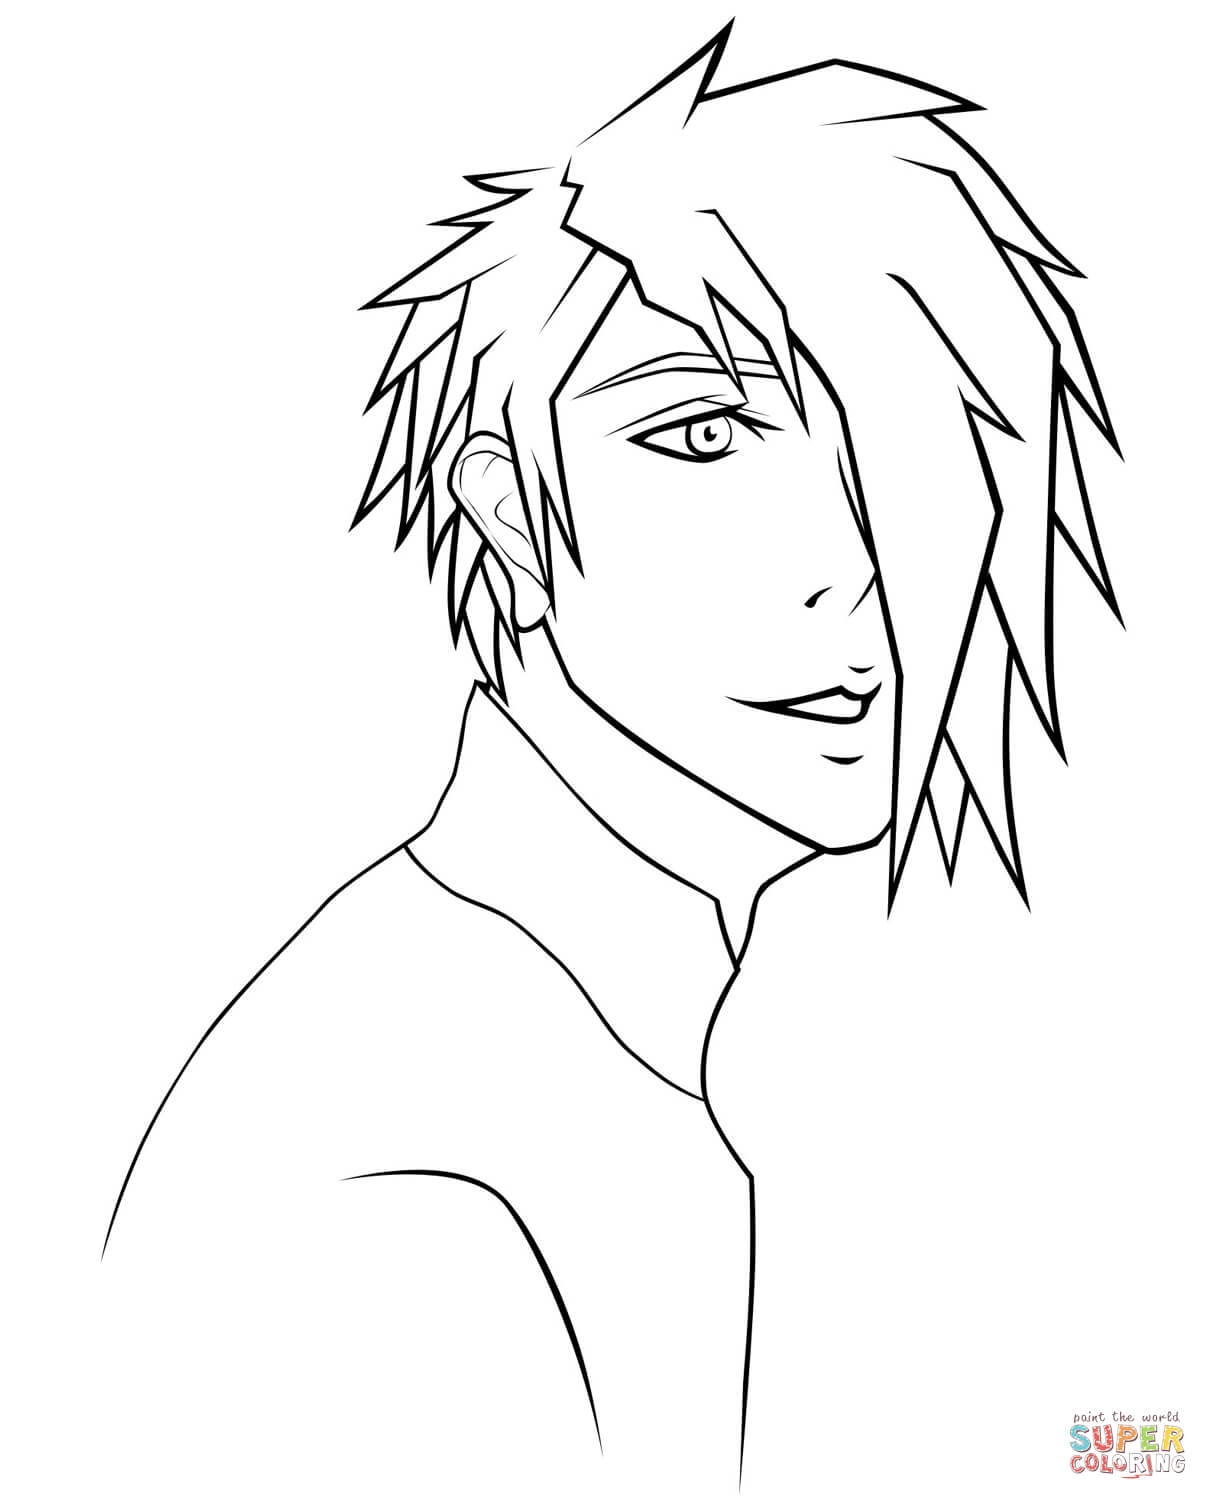 1208x1500 Anime Japanese Boy Coloring Page Free Printable Coloring Pages